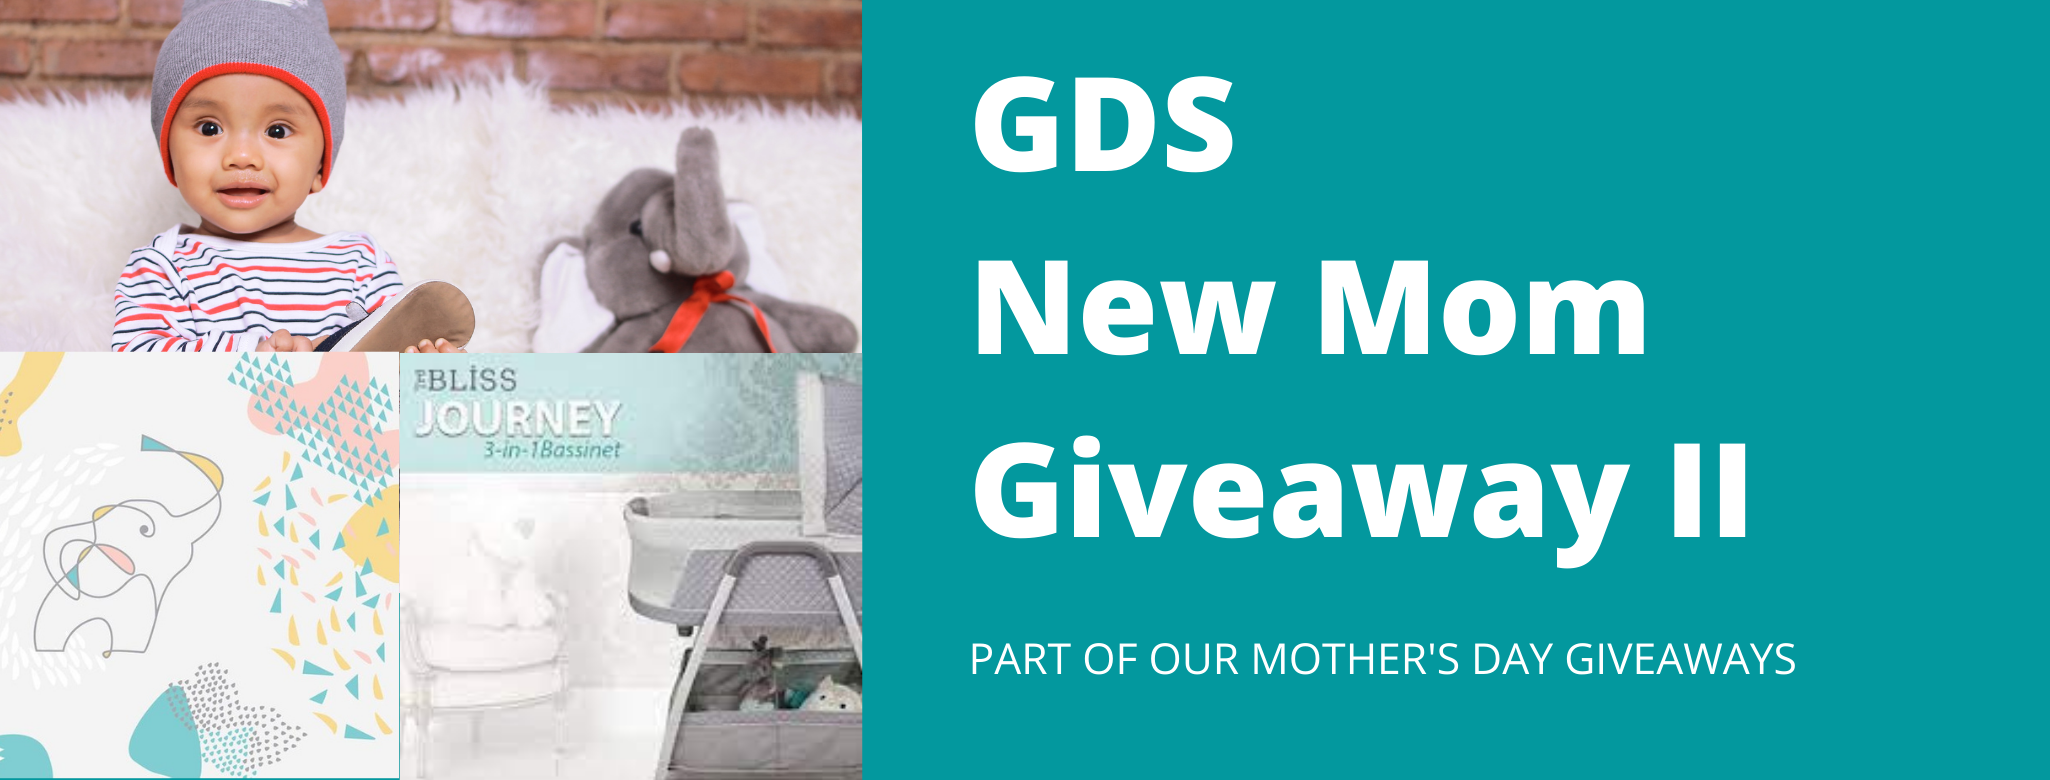 GDS New Mom Giveaway II